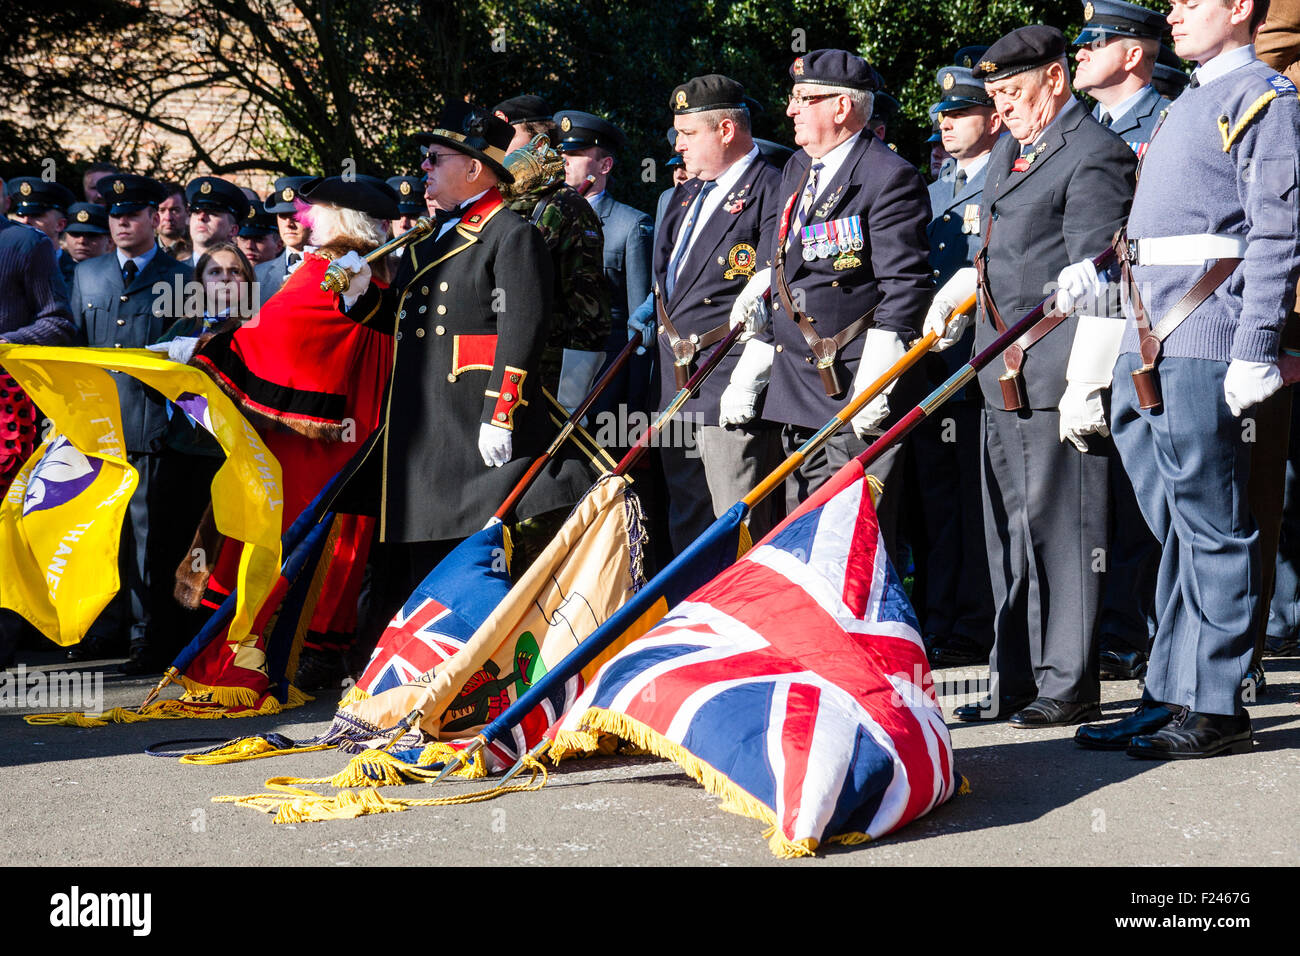 England, Rememberance Sunday. Flags lowered during the two minute silence, ex-military uniformed personnel standing - Stock Image